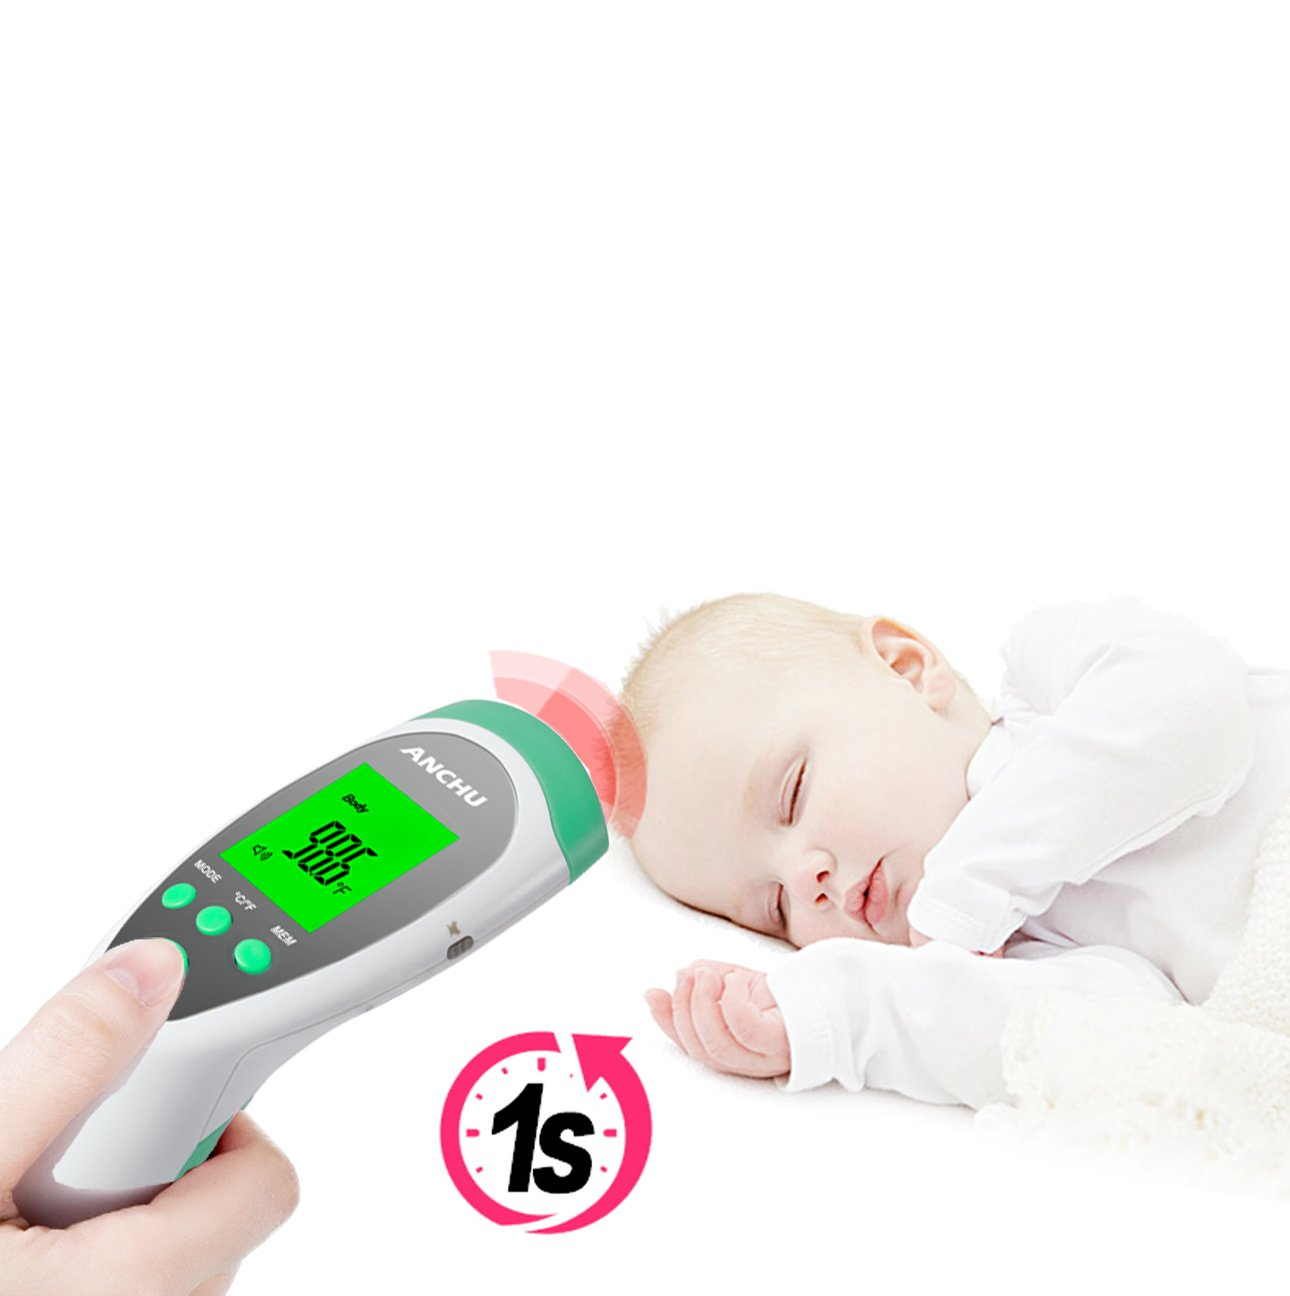 Medical Infrared Non-Contact Forehead FeverThermometer for Baby Kids Infants and Adults with Fever Indicator FDA and CE Approved by ANCHU (Image #3)